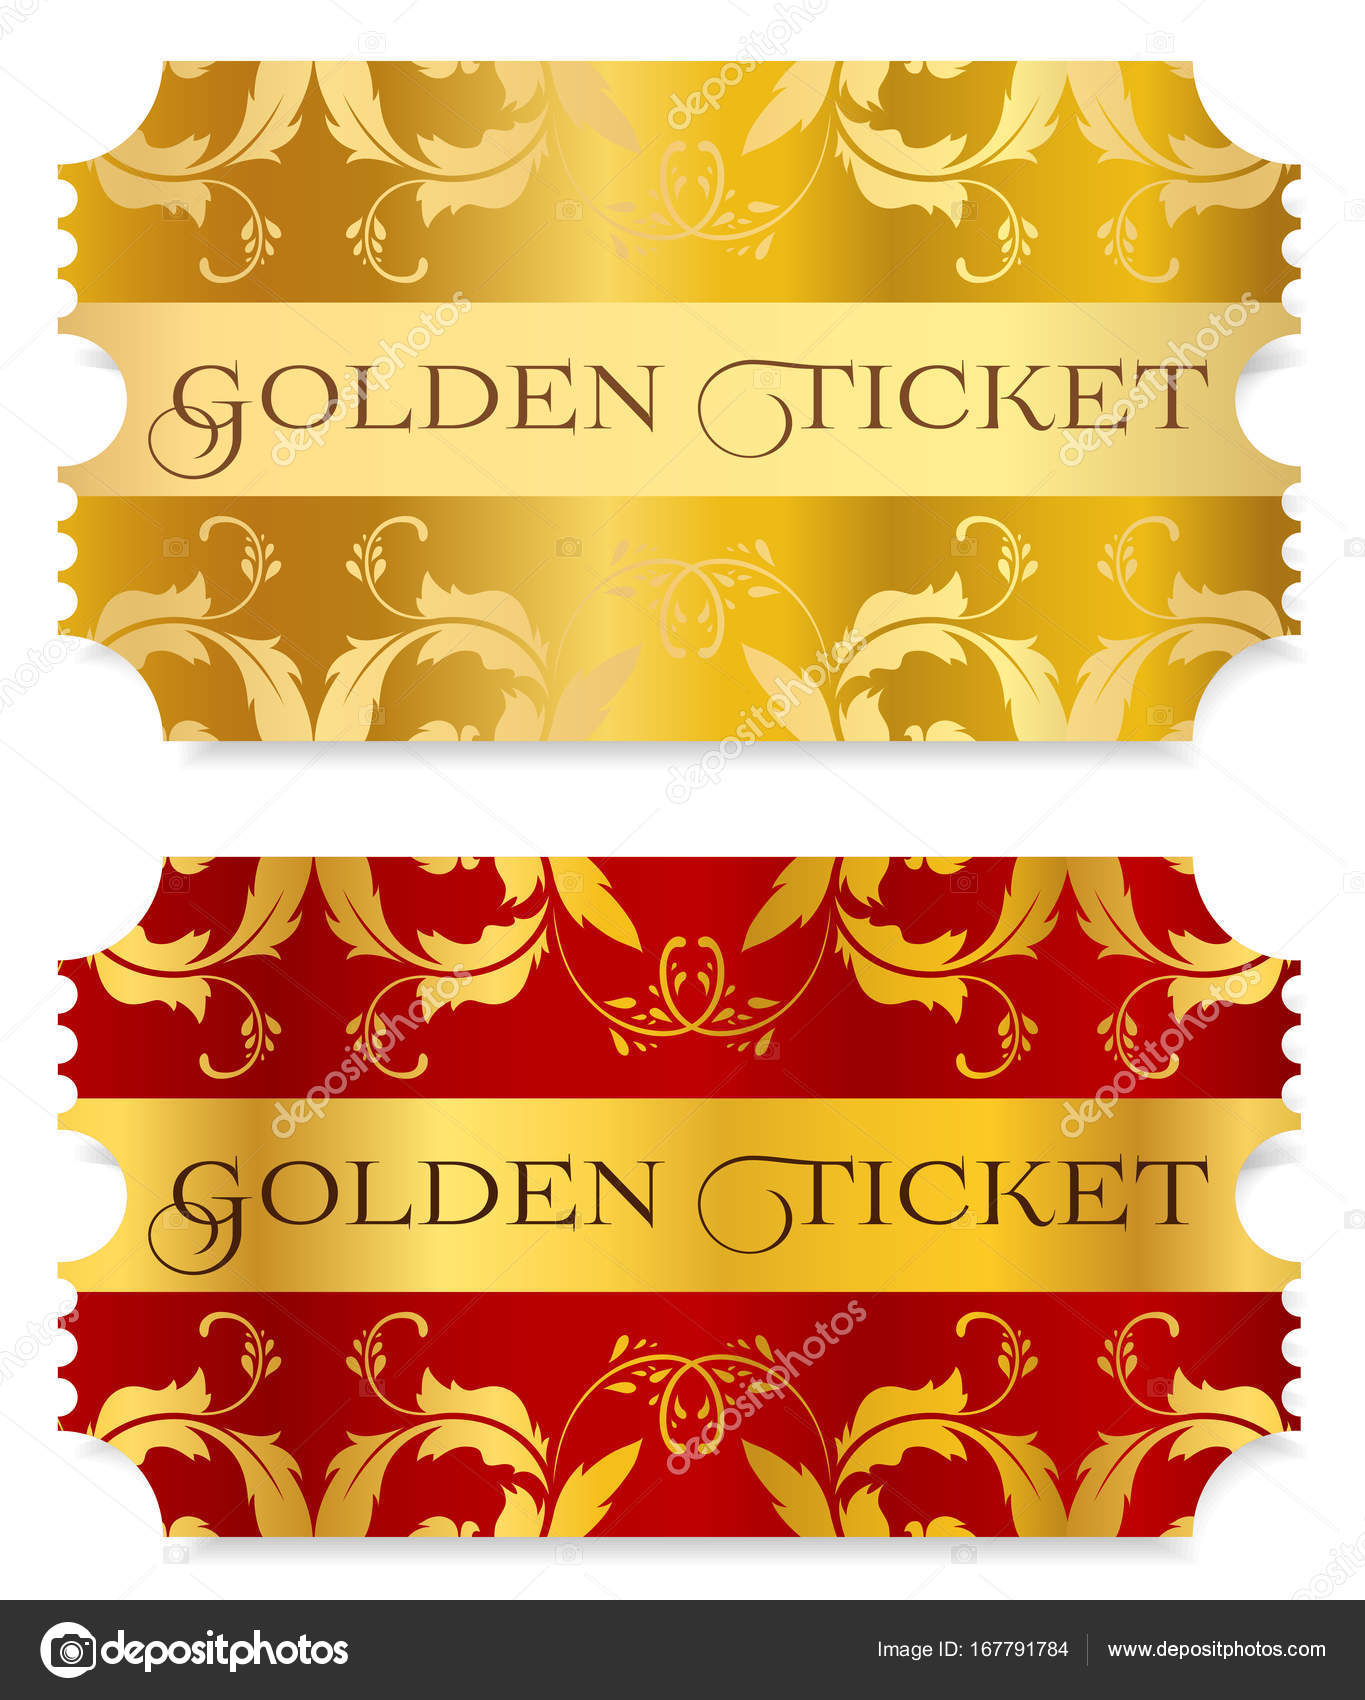 gold ticket golden token tear off ticket coupon isolated on